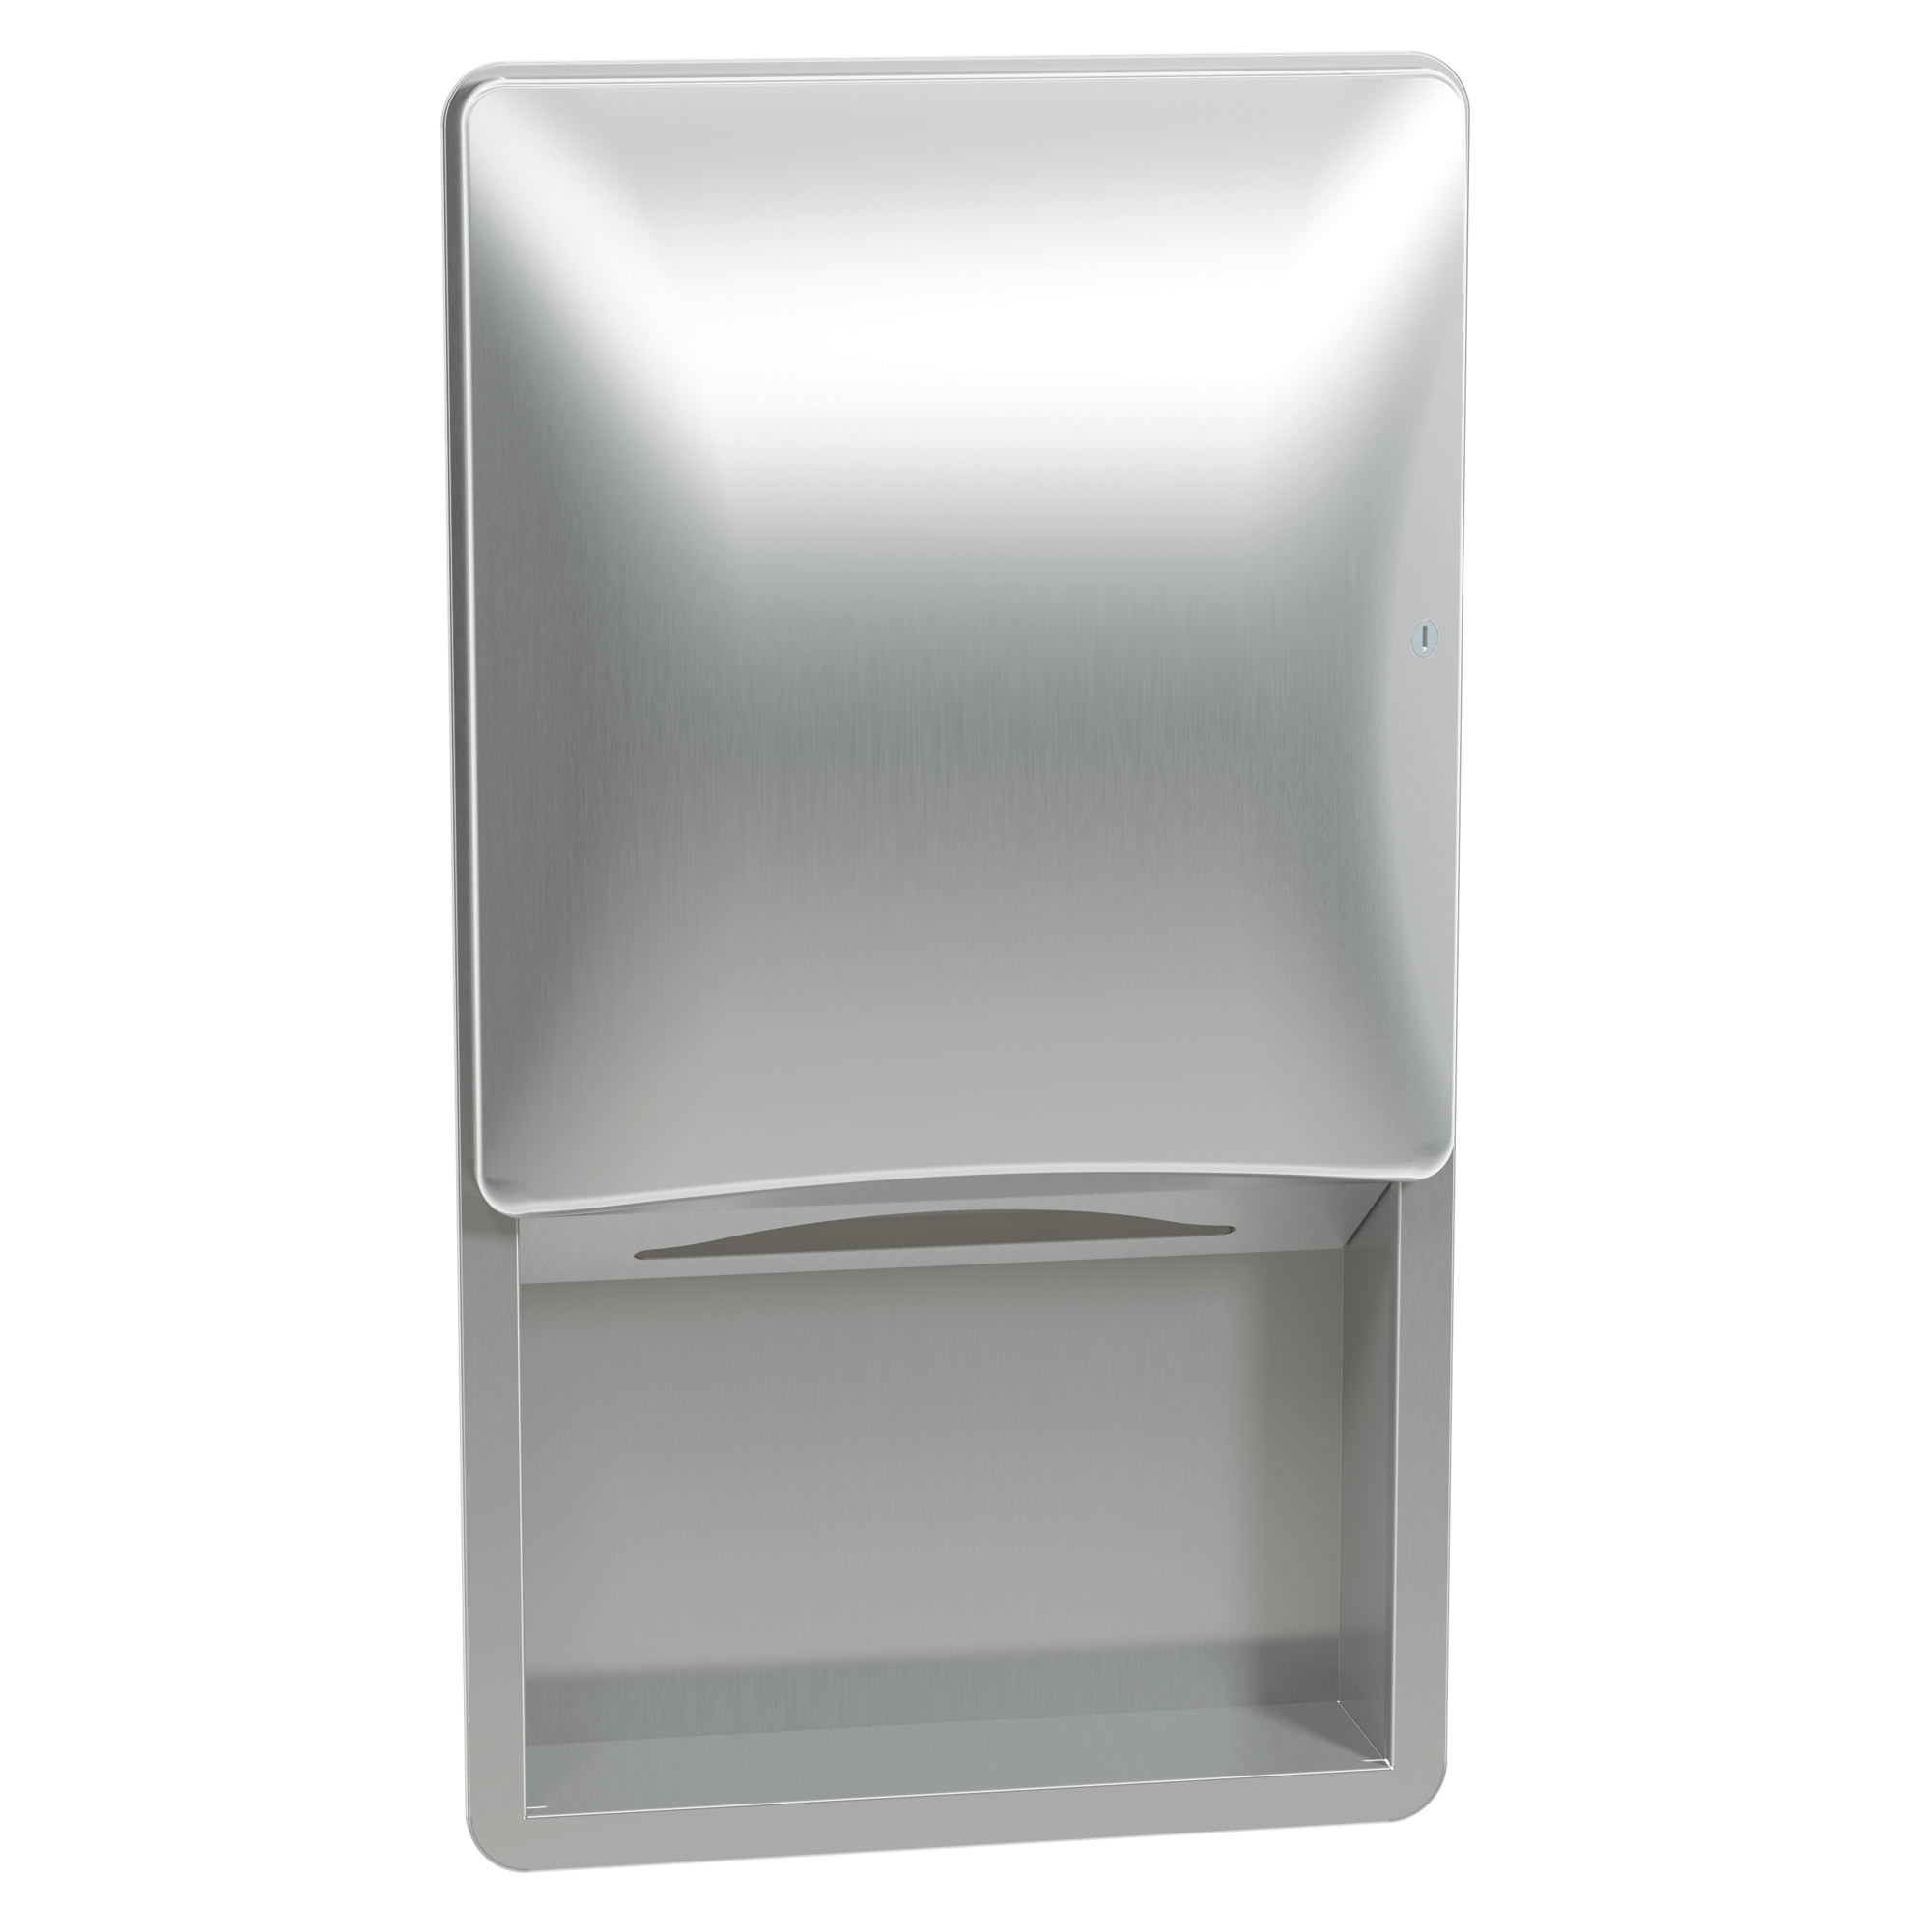 Bradley 2A01-10 Semi-Recessed Lever-Activated Towel Dispenser